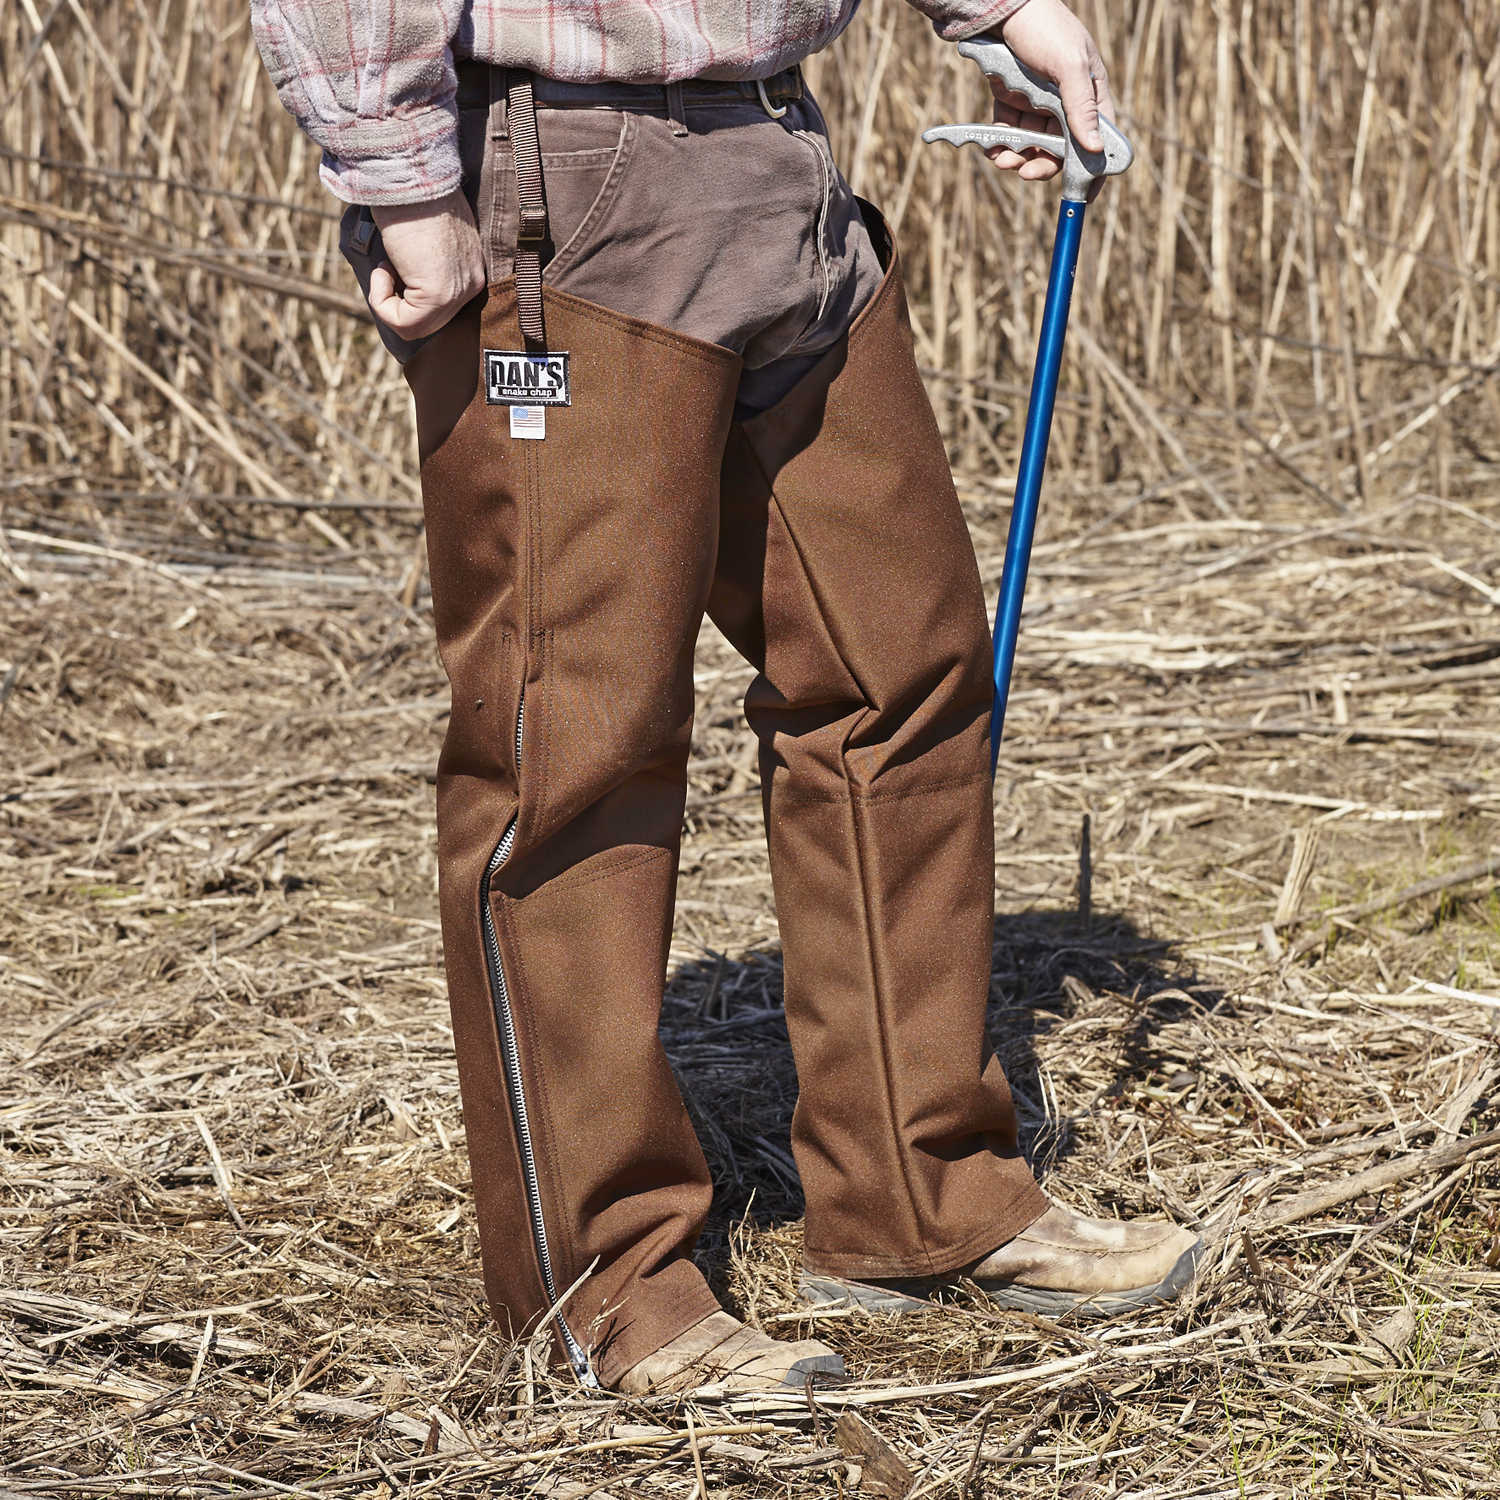 "Dan's Hunting Gear Snake Predector Chaps Large 28"" Inseam"